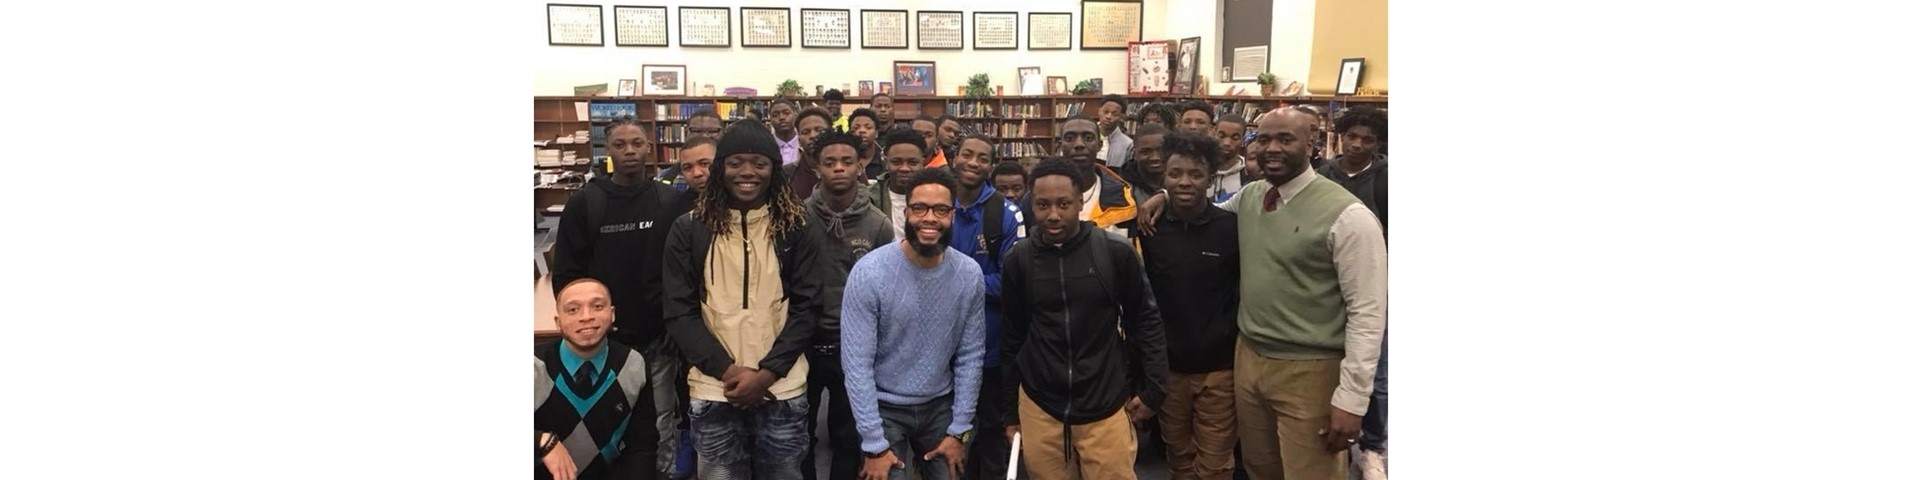 Motivation and Empowerment Seminar at Keith Middle-High with Dr. Kurt S. Clark